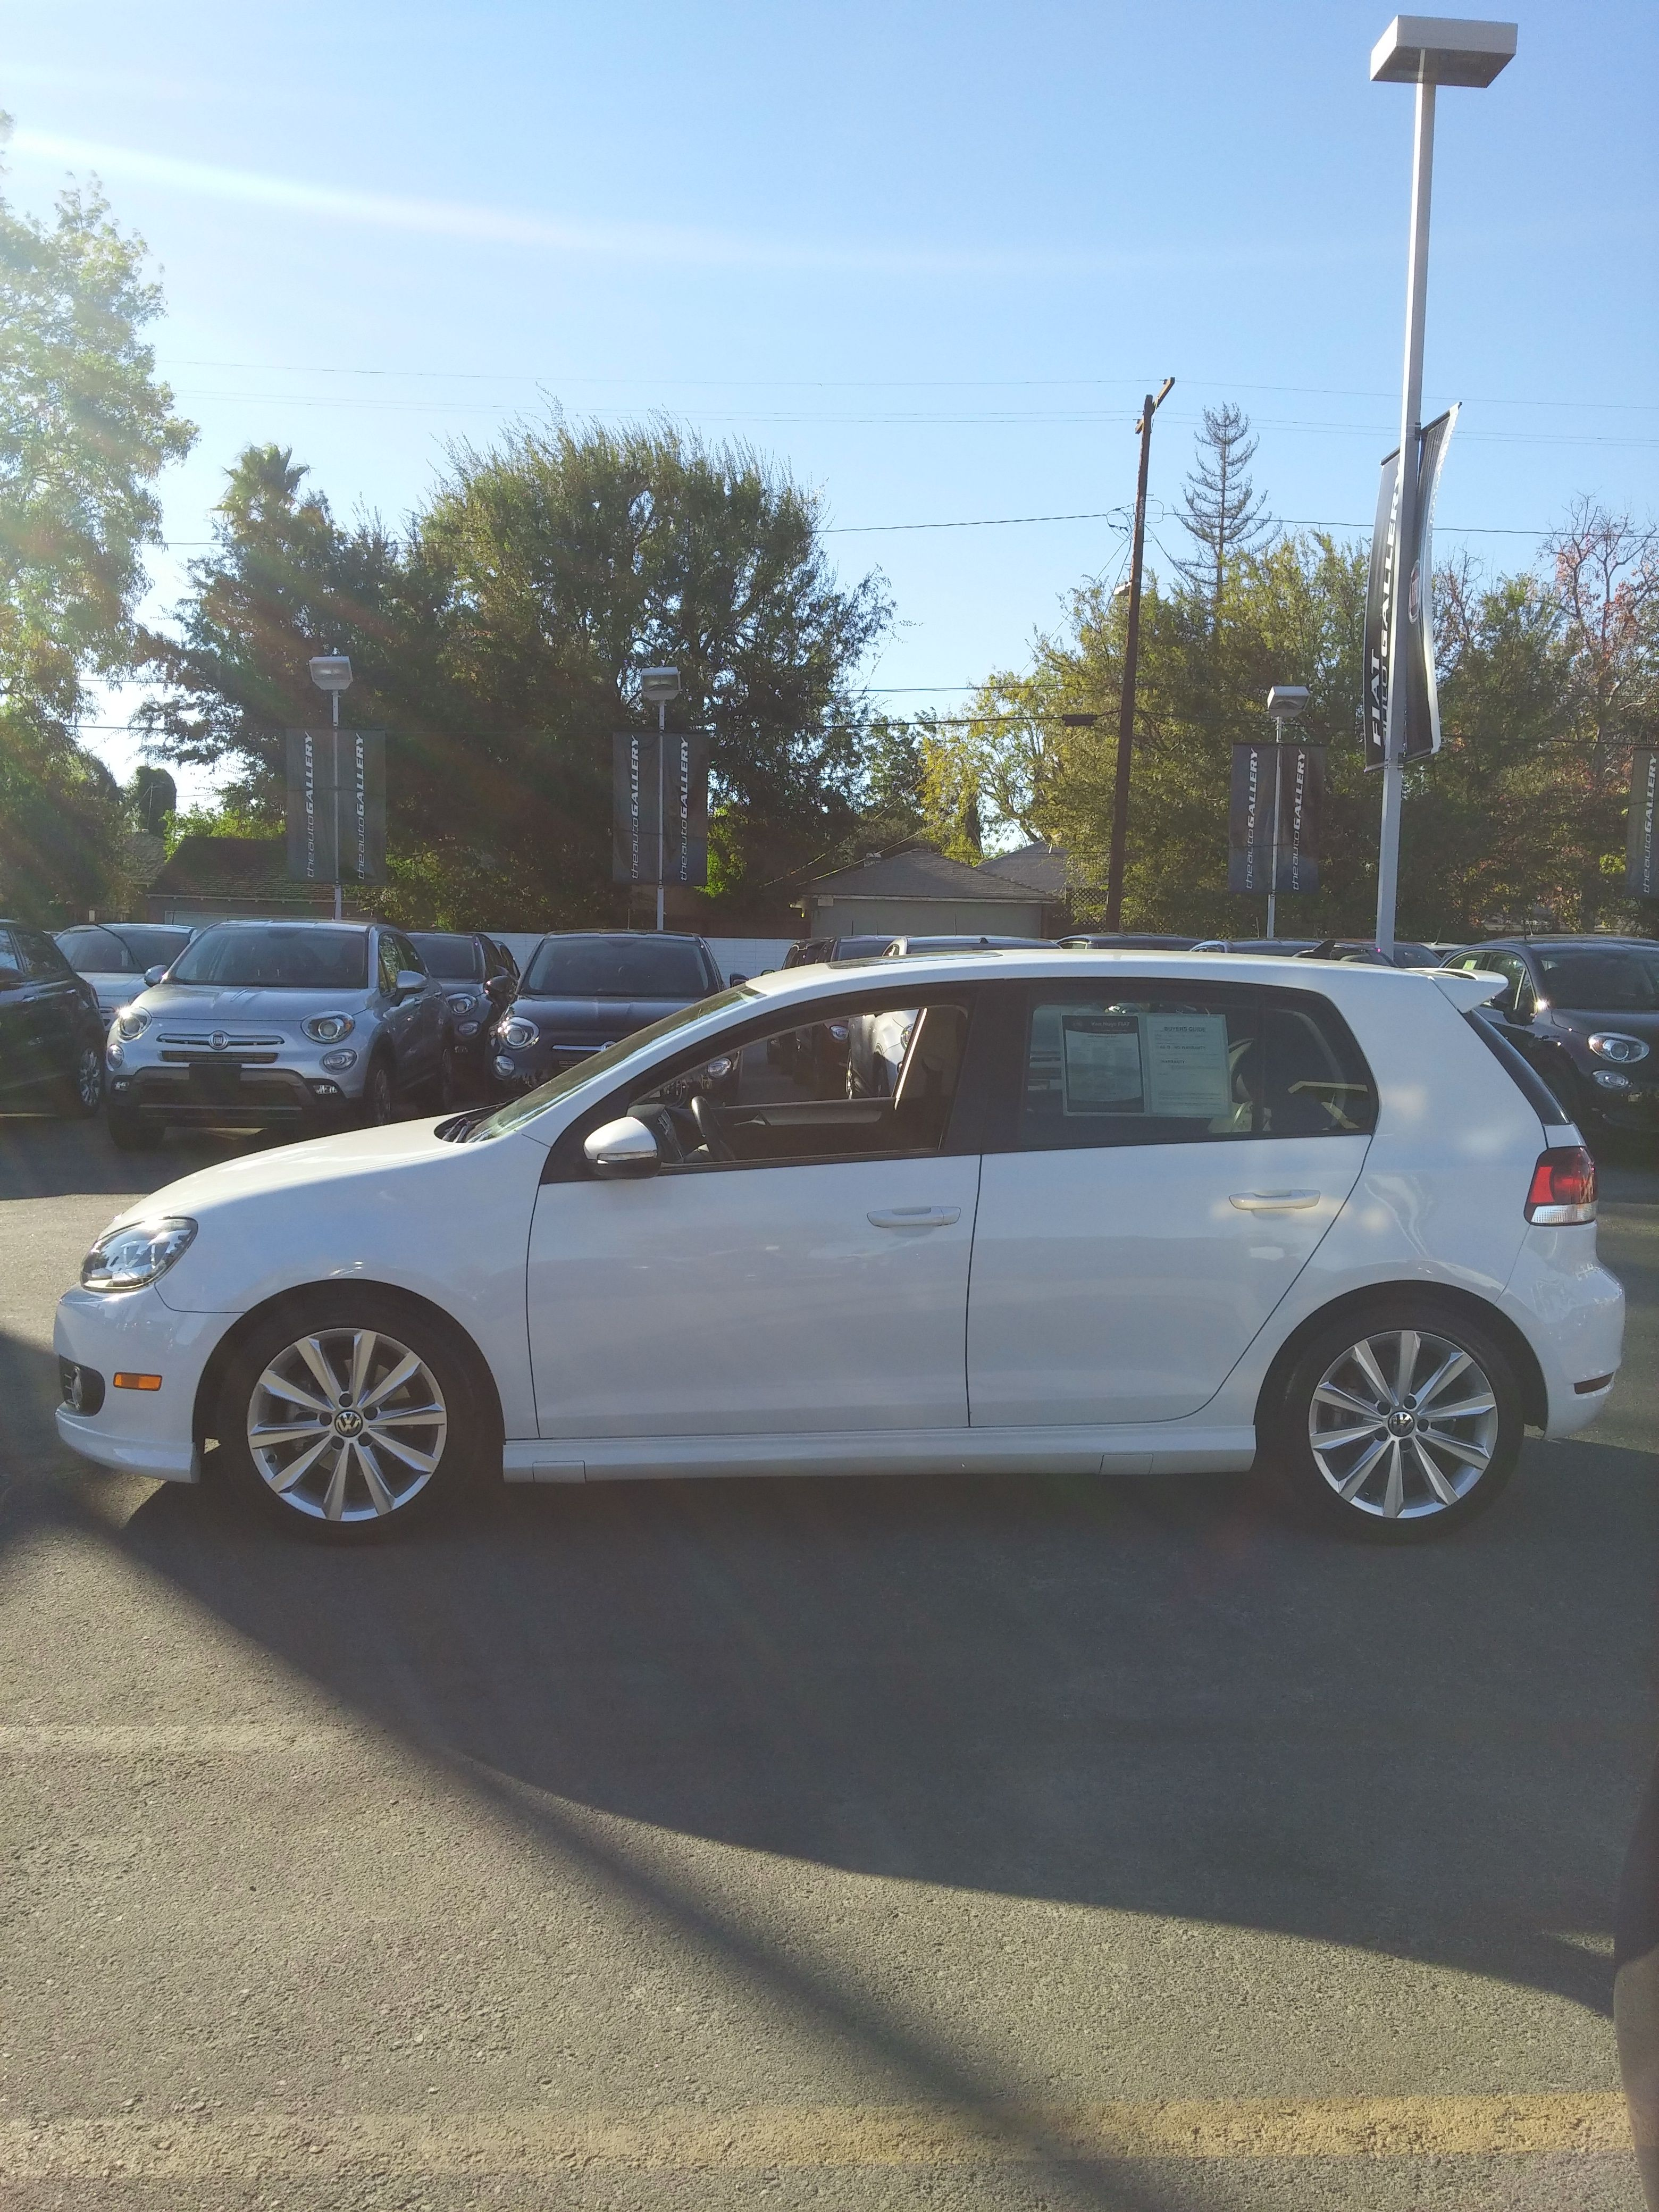 2012 vw golf tdi currently for sale as a pre owned vehicle is this rh pinterest com 2005 vw golf tdi automatic transmission problems 2005 vw golf tdi automatic transmission problems